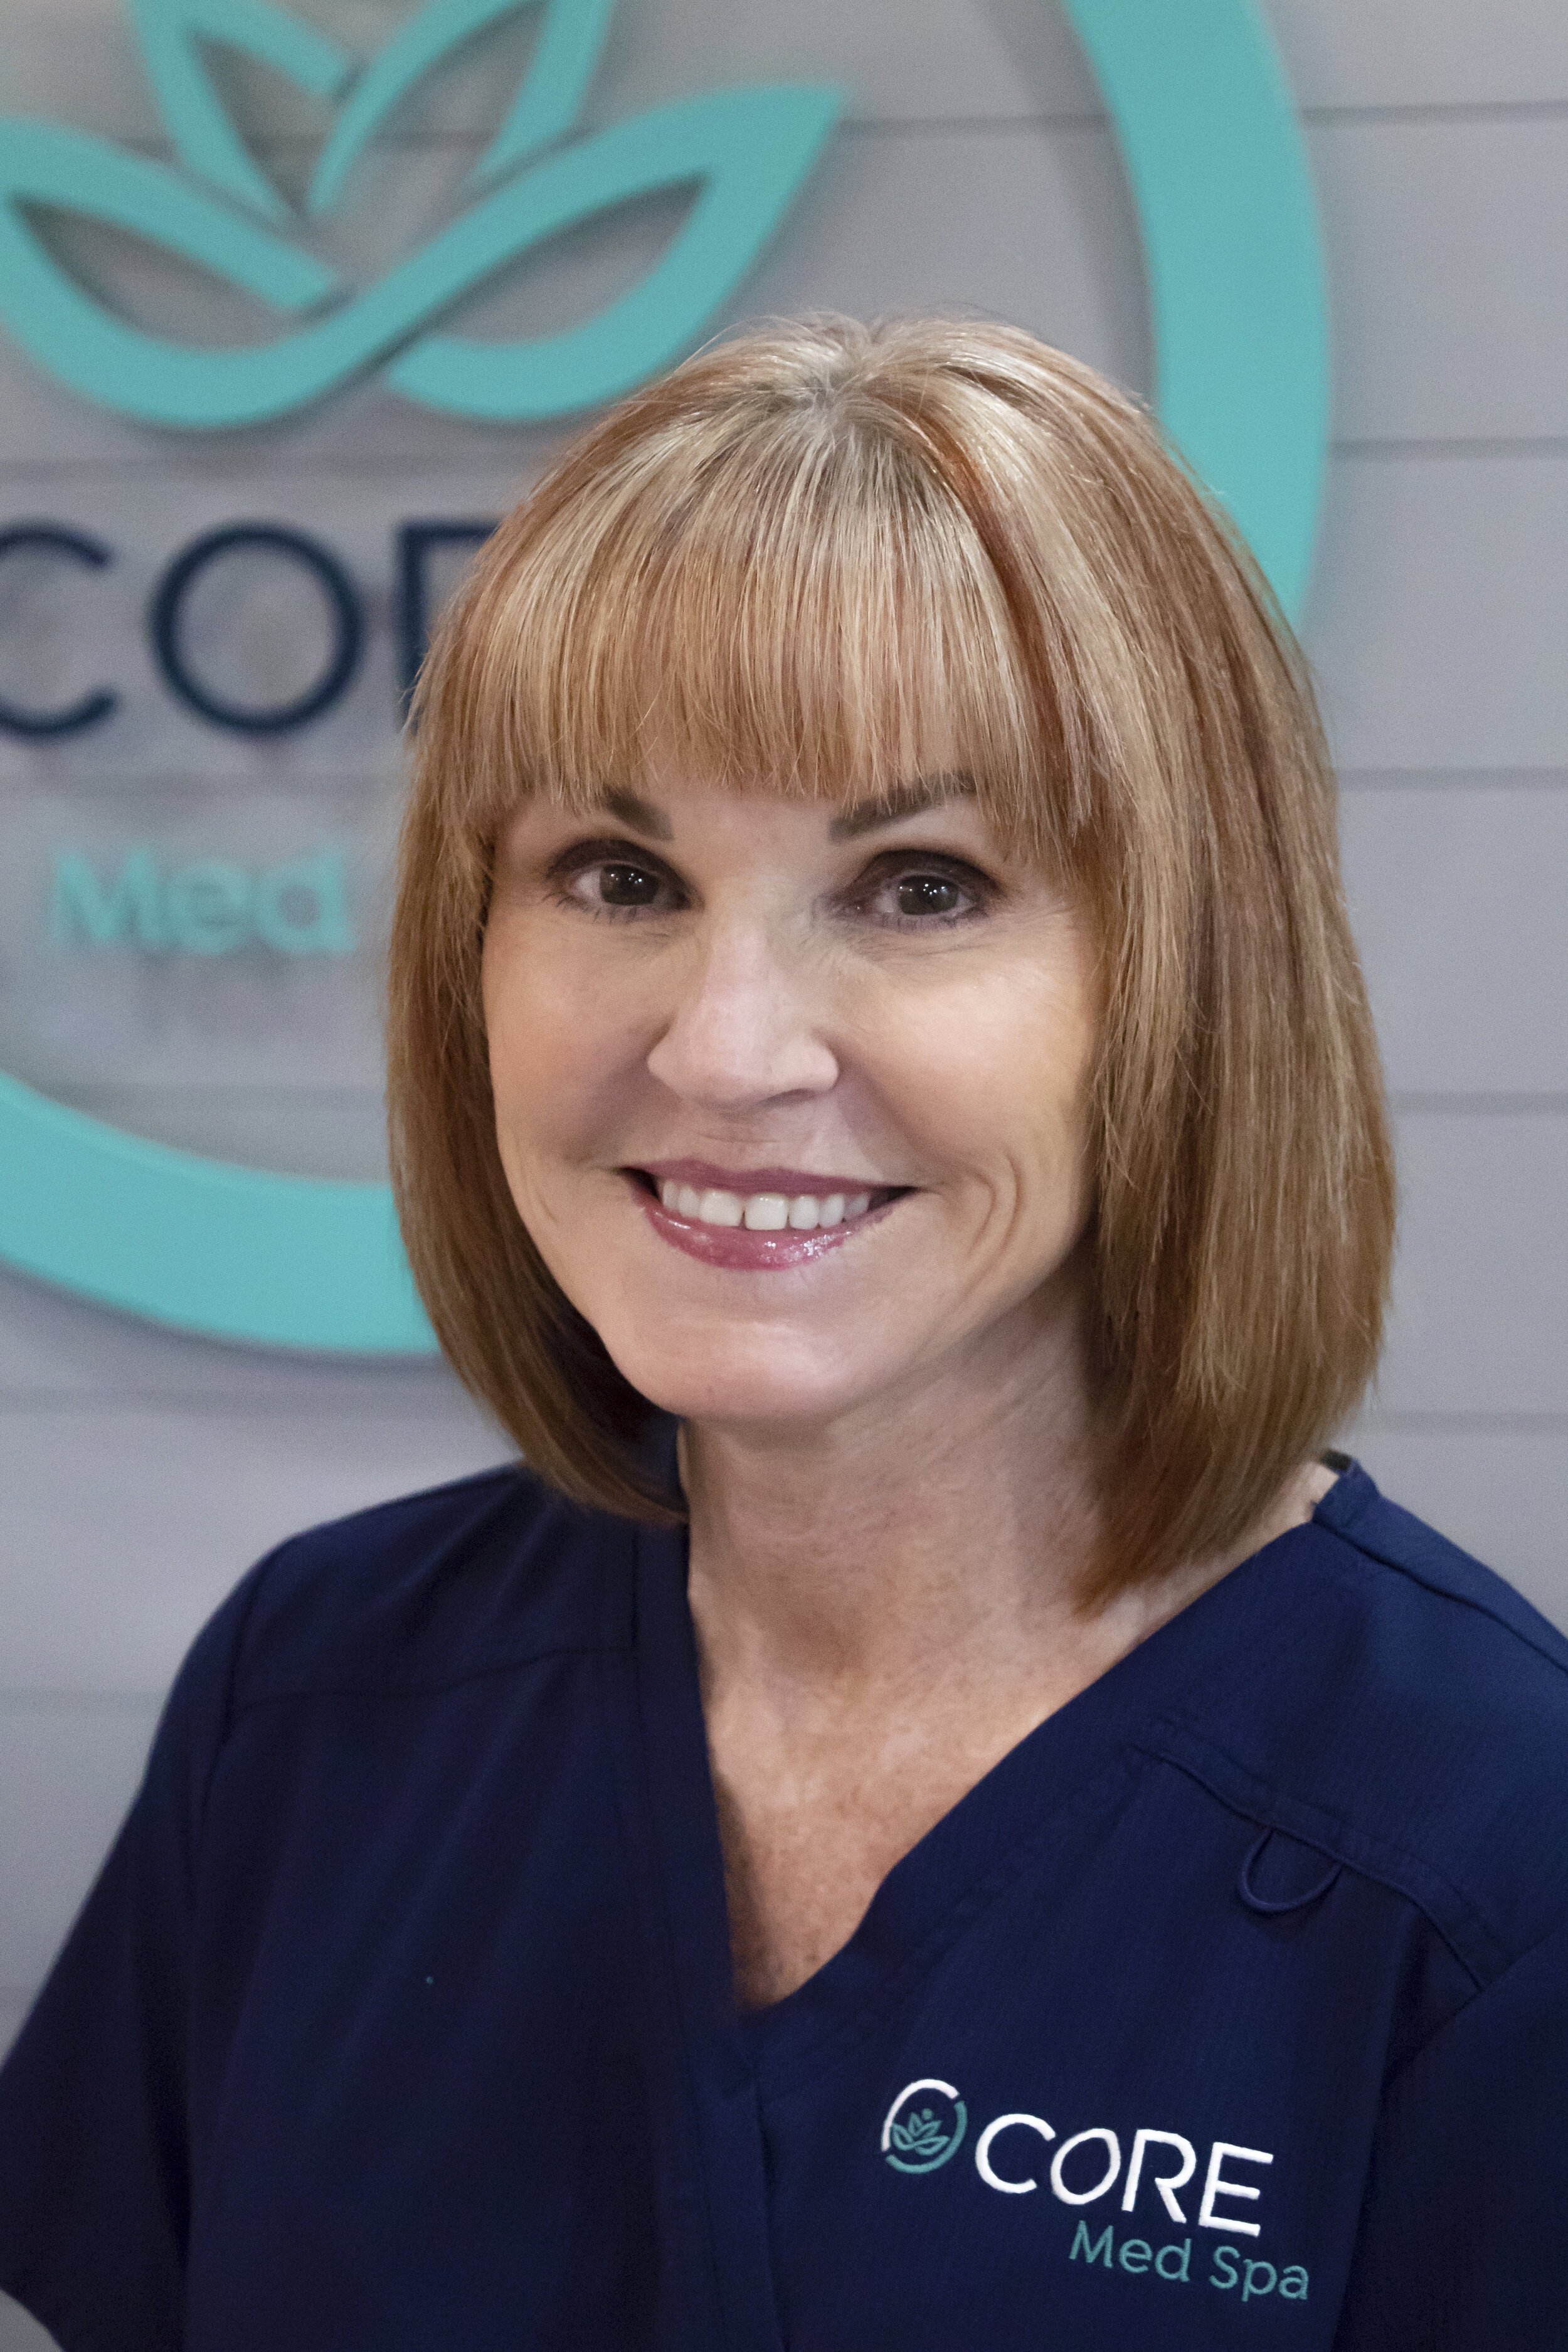 """ELAINE - """"I am a lifelong resident of southern Illinois, and have always been intrigued by cosmetic surgery. I have a Bachelors Degree in nursing and began my career in Plastic Surgery in 1987. Seeing the wave of the future, I wanted to advance my aesthetics knowledge and became a certified nurse injector 10 years ago. I specialize in Botox and dermal fillers and also perform medical grade peels.""""""""Making my patients feel confident about their appearance is my passion. I am a perfectionist and strive to give my patients the best result possible. Injectables are a way to make patients look refreshed and delay the signs of aging without the need for invasive procedures. I am beyond excited to bring my expertise to Core Med Spa."""""""